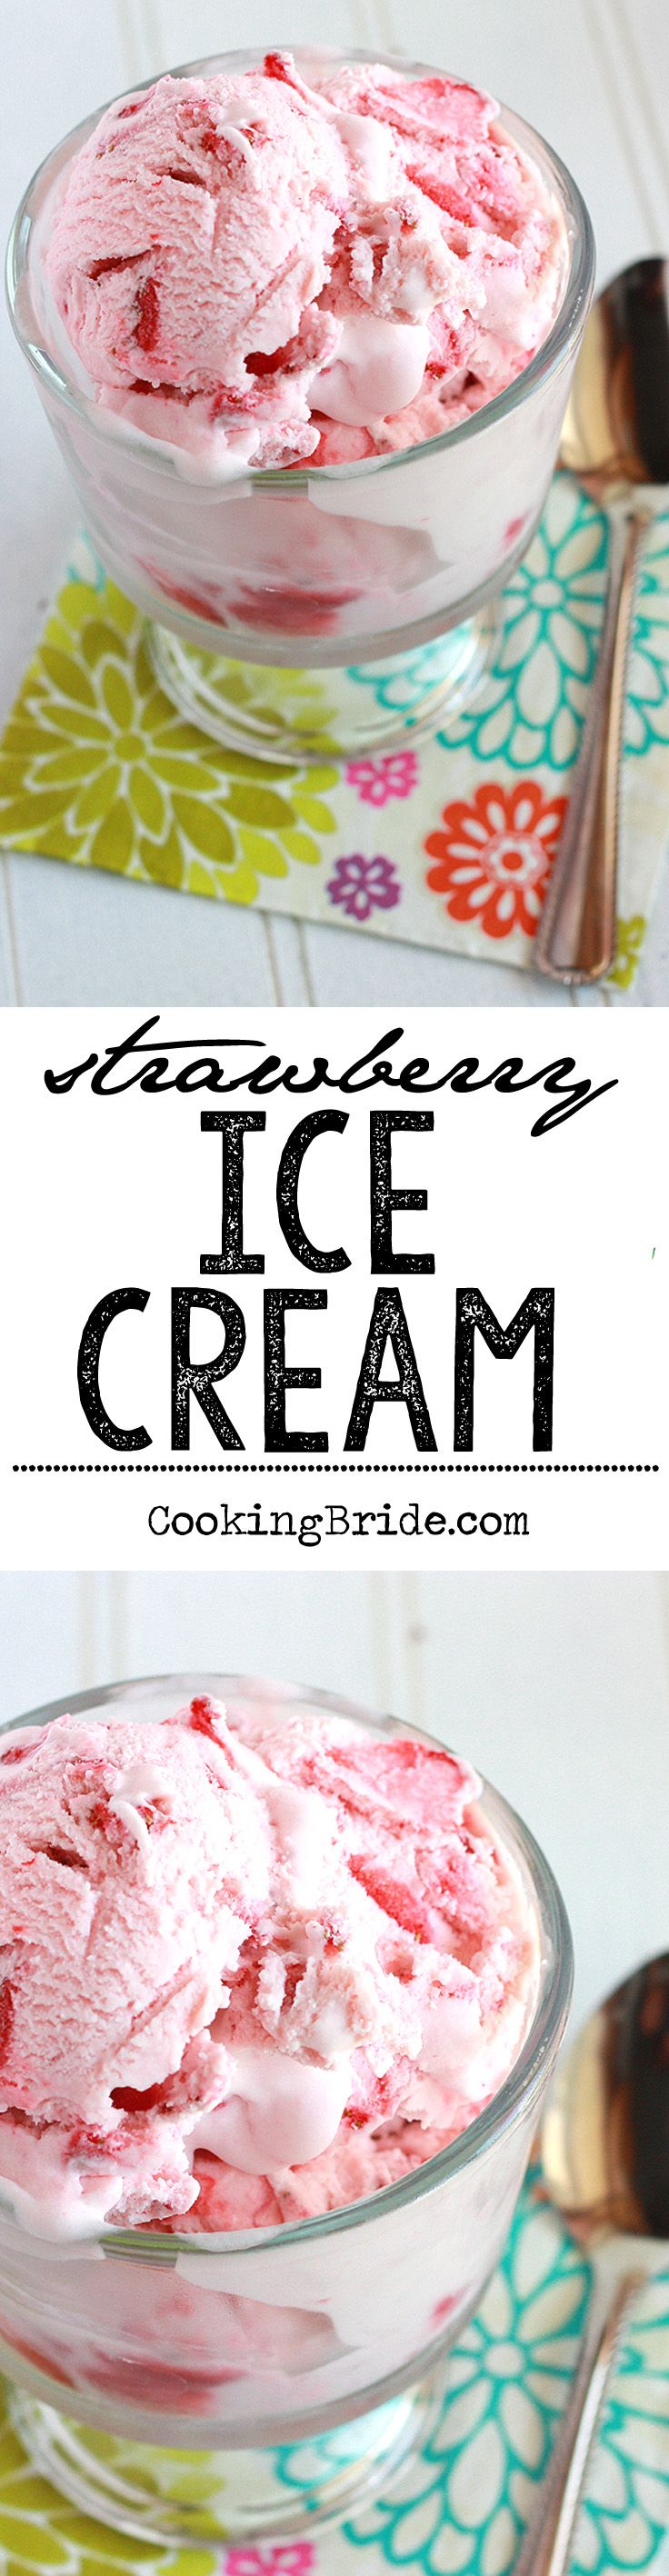 Take advantage of strawberry season with this simple recipe for strawberry ice cream.